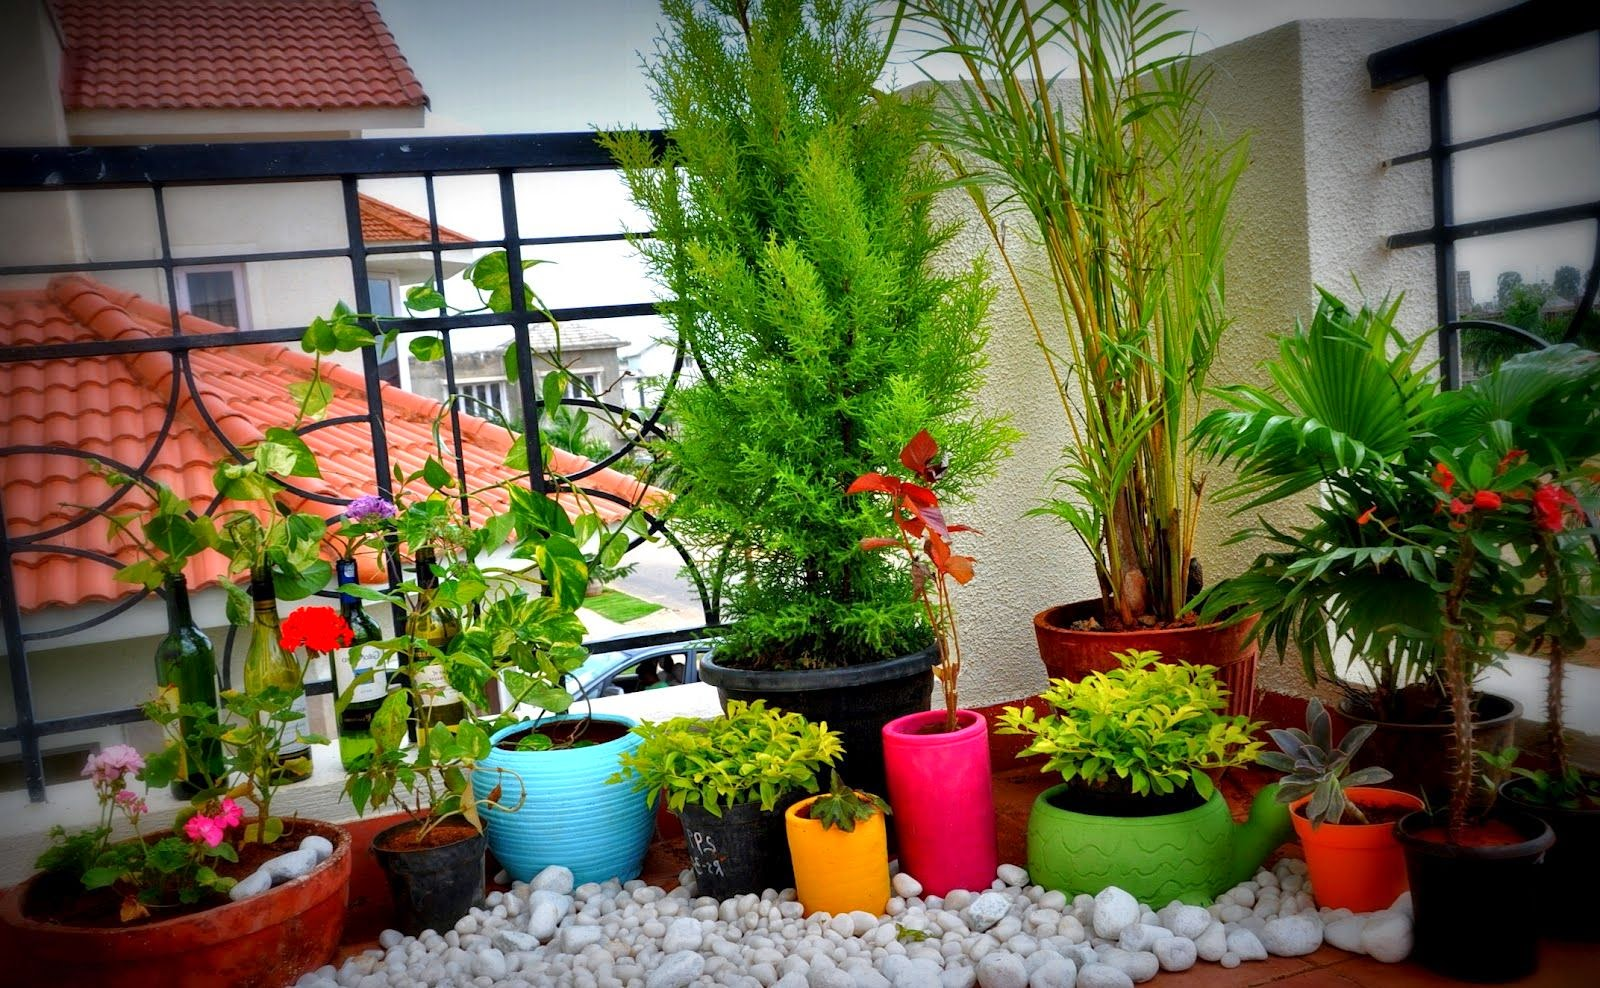 Home garden design for small spaces for Small home garden